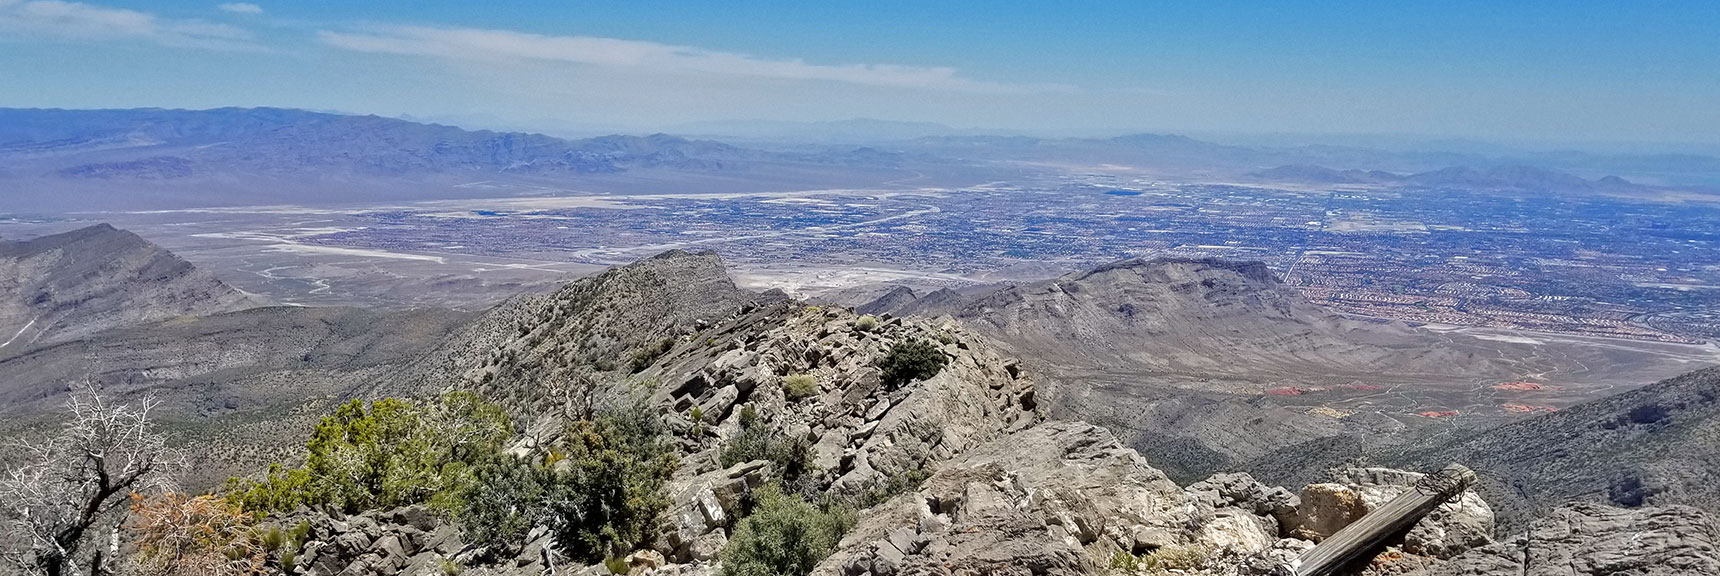 Mid-North Las Vegas Valley from La Madre Mountain Summit| La Madre Mountain Northern Approach, Nevada